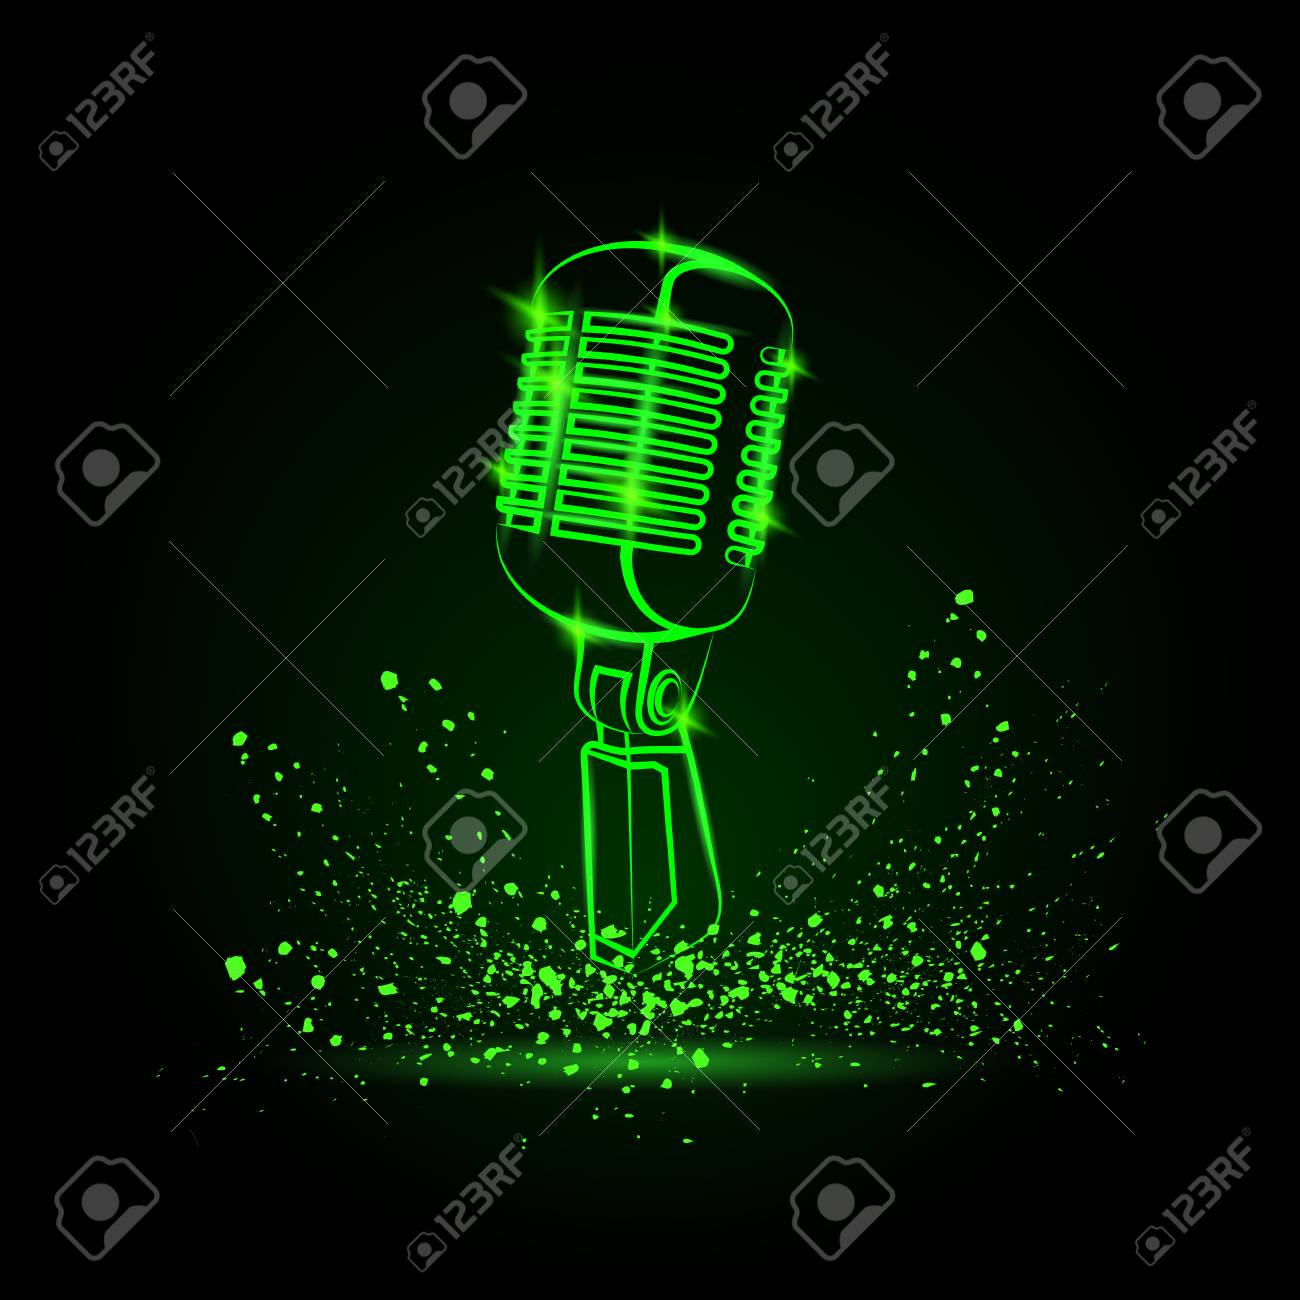 Good Wallpaper Music Disk - 75742361-green-neon-microphone-illustration-on-a-black-background-music-festival-background-for-flyer-banner-  Picture_569312.jpg